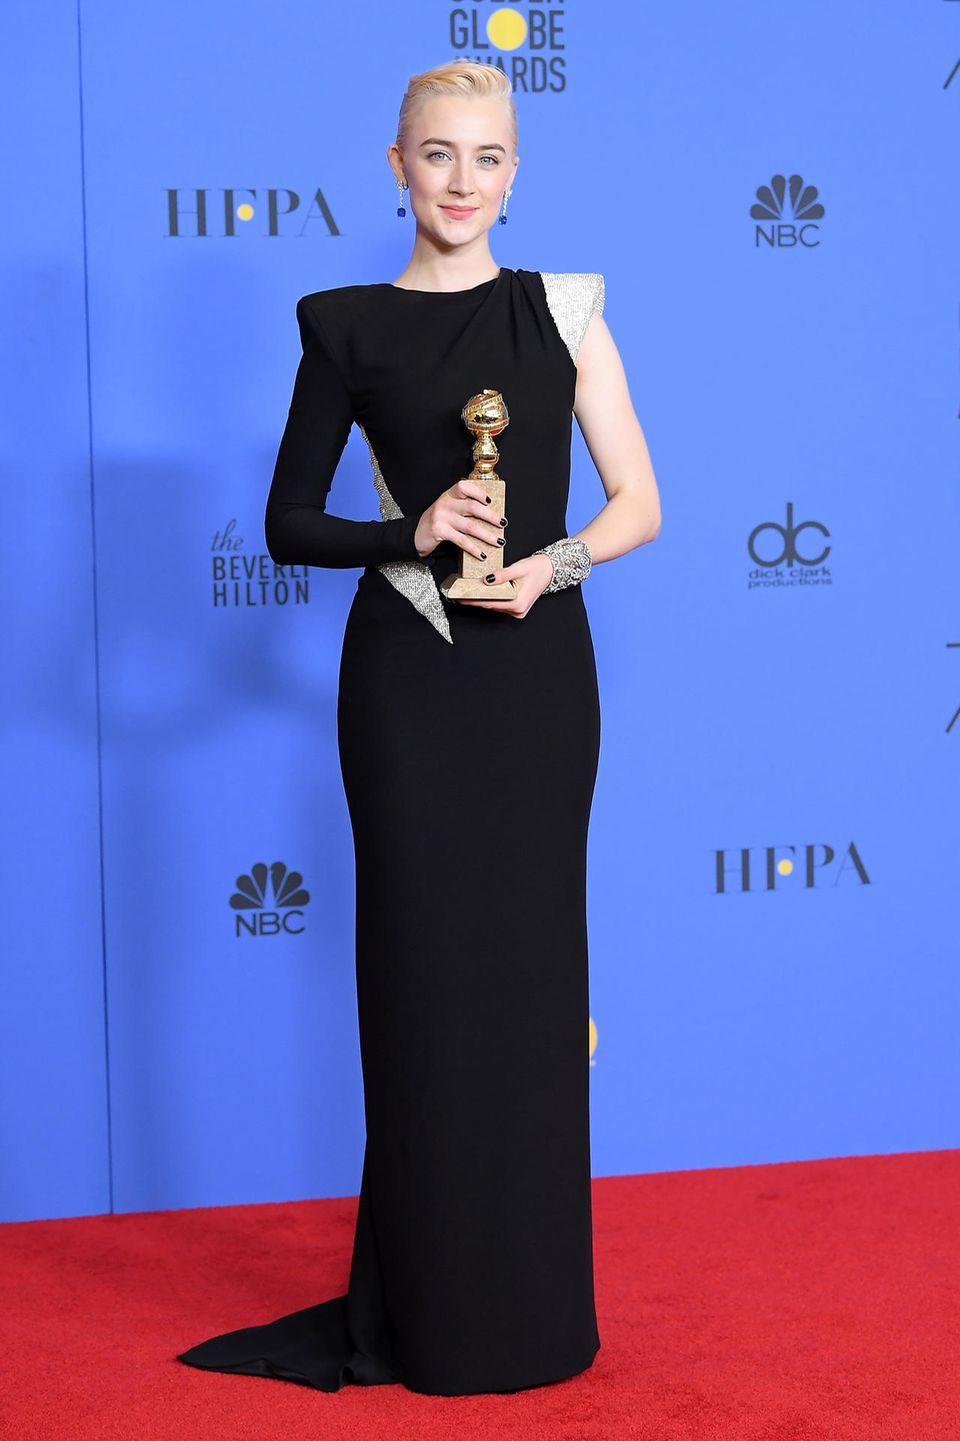 Glamour pur: Saoirse Ronan in Atelier Versace